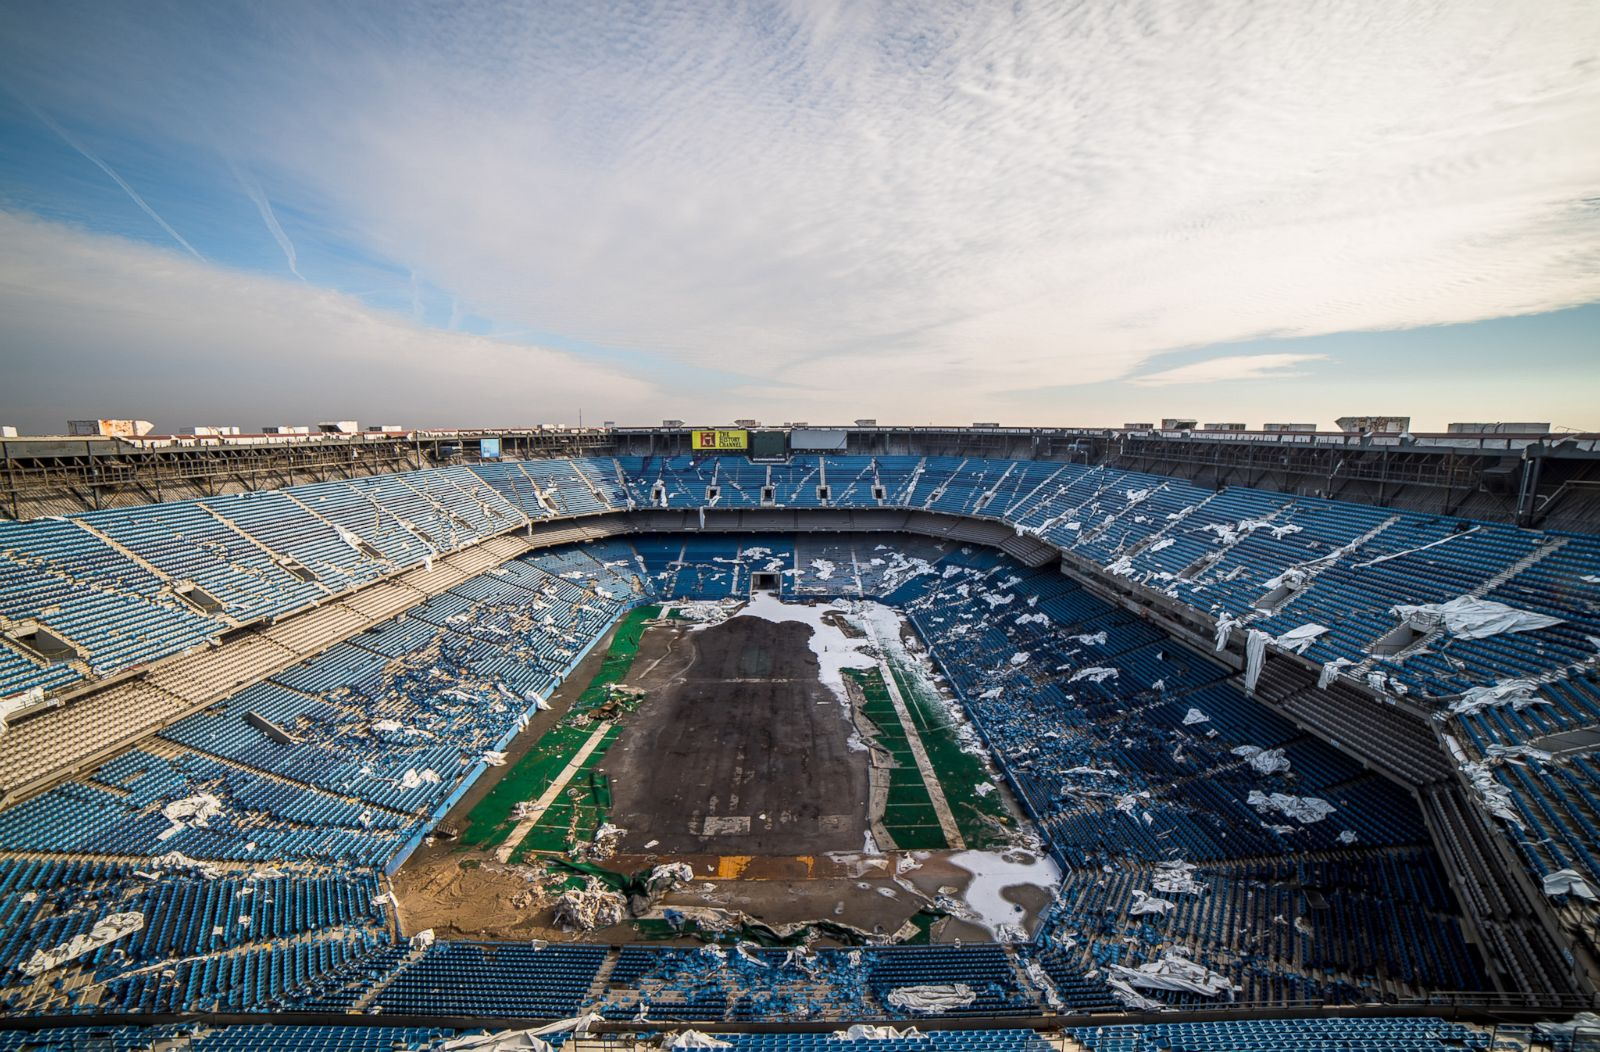 Pontiac Silverdome, Former Home to Detroit Lions, in Decay